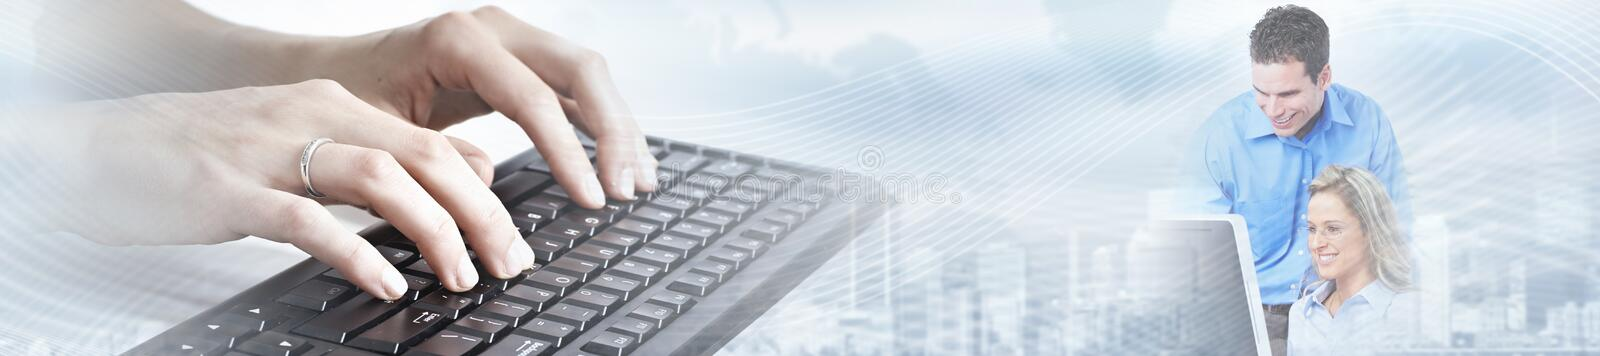 Hands typing on computer laptop. Business people team working in office with computer laptop stock photo